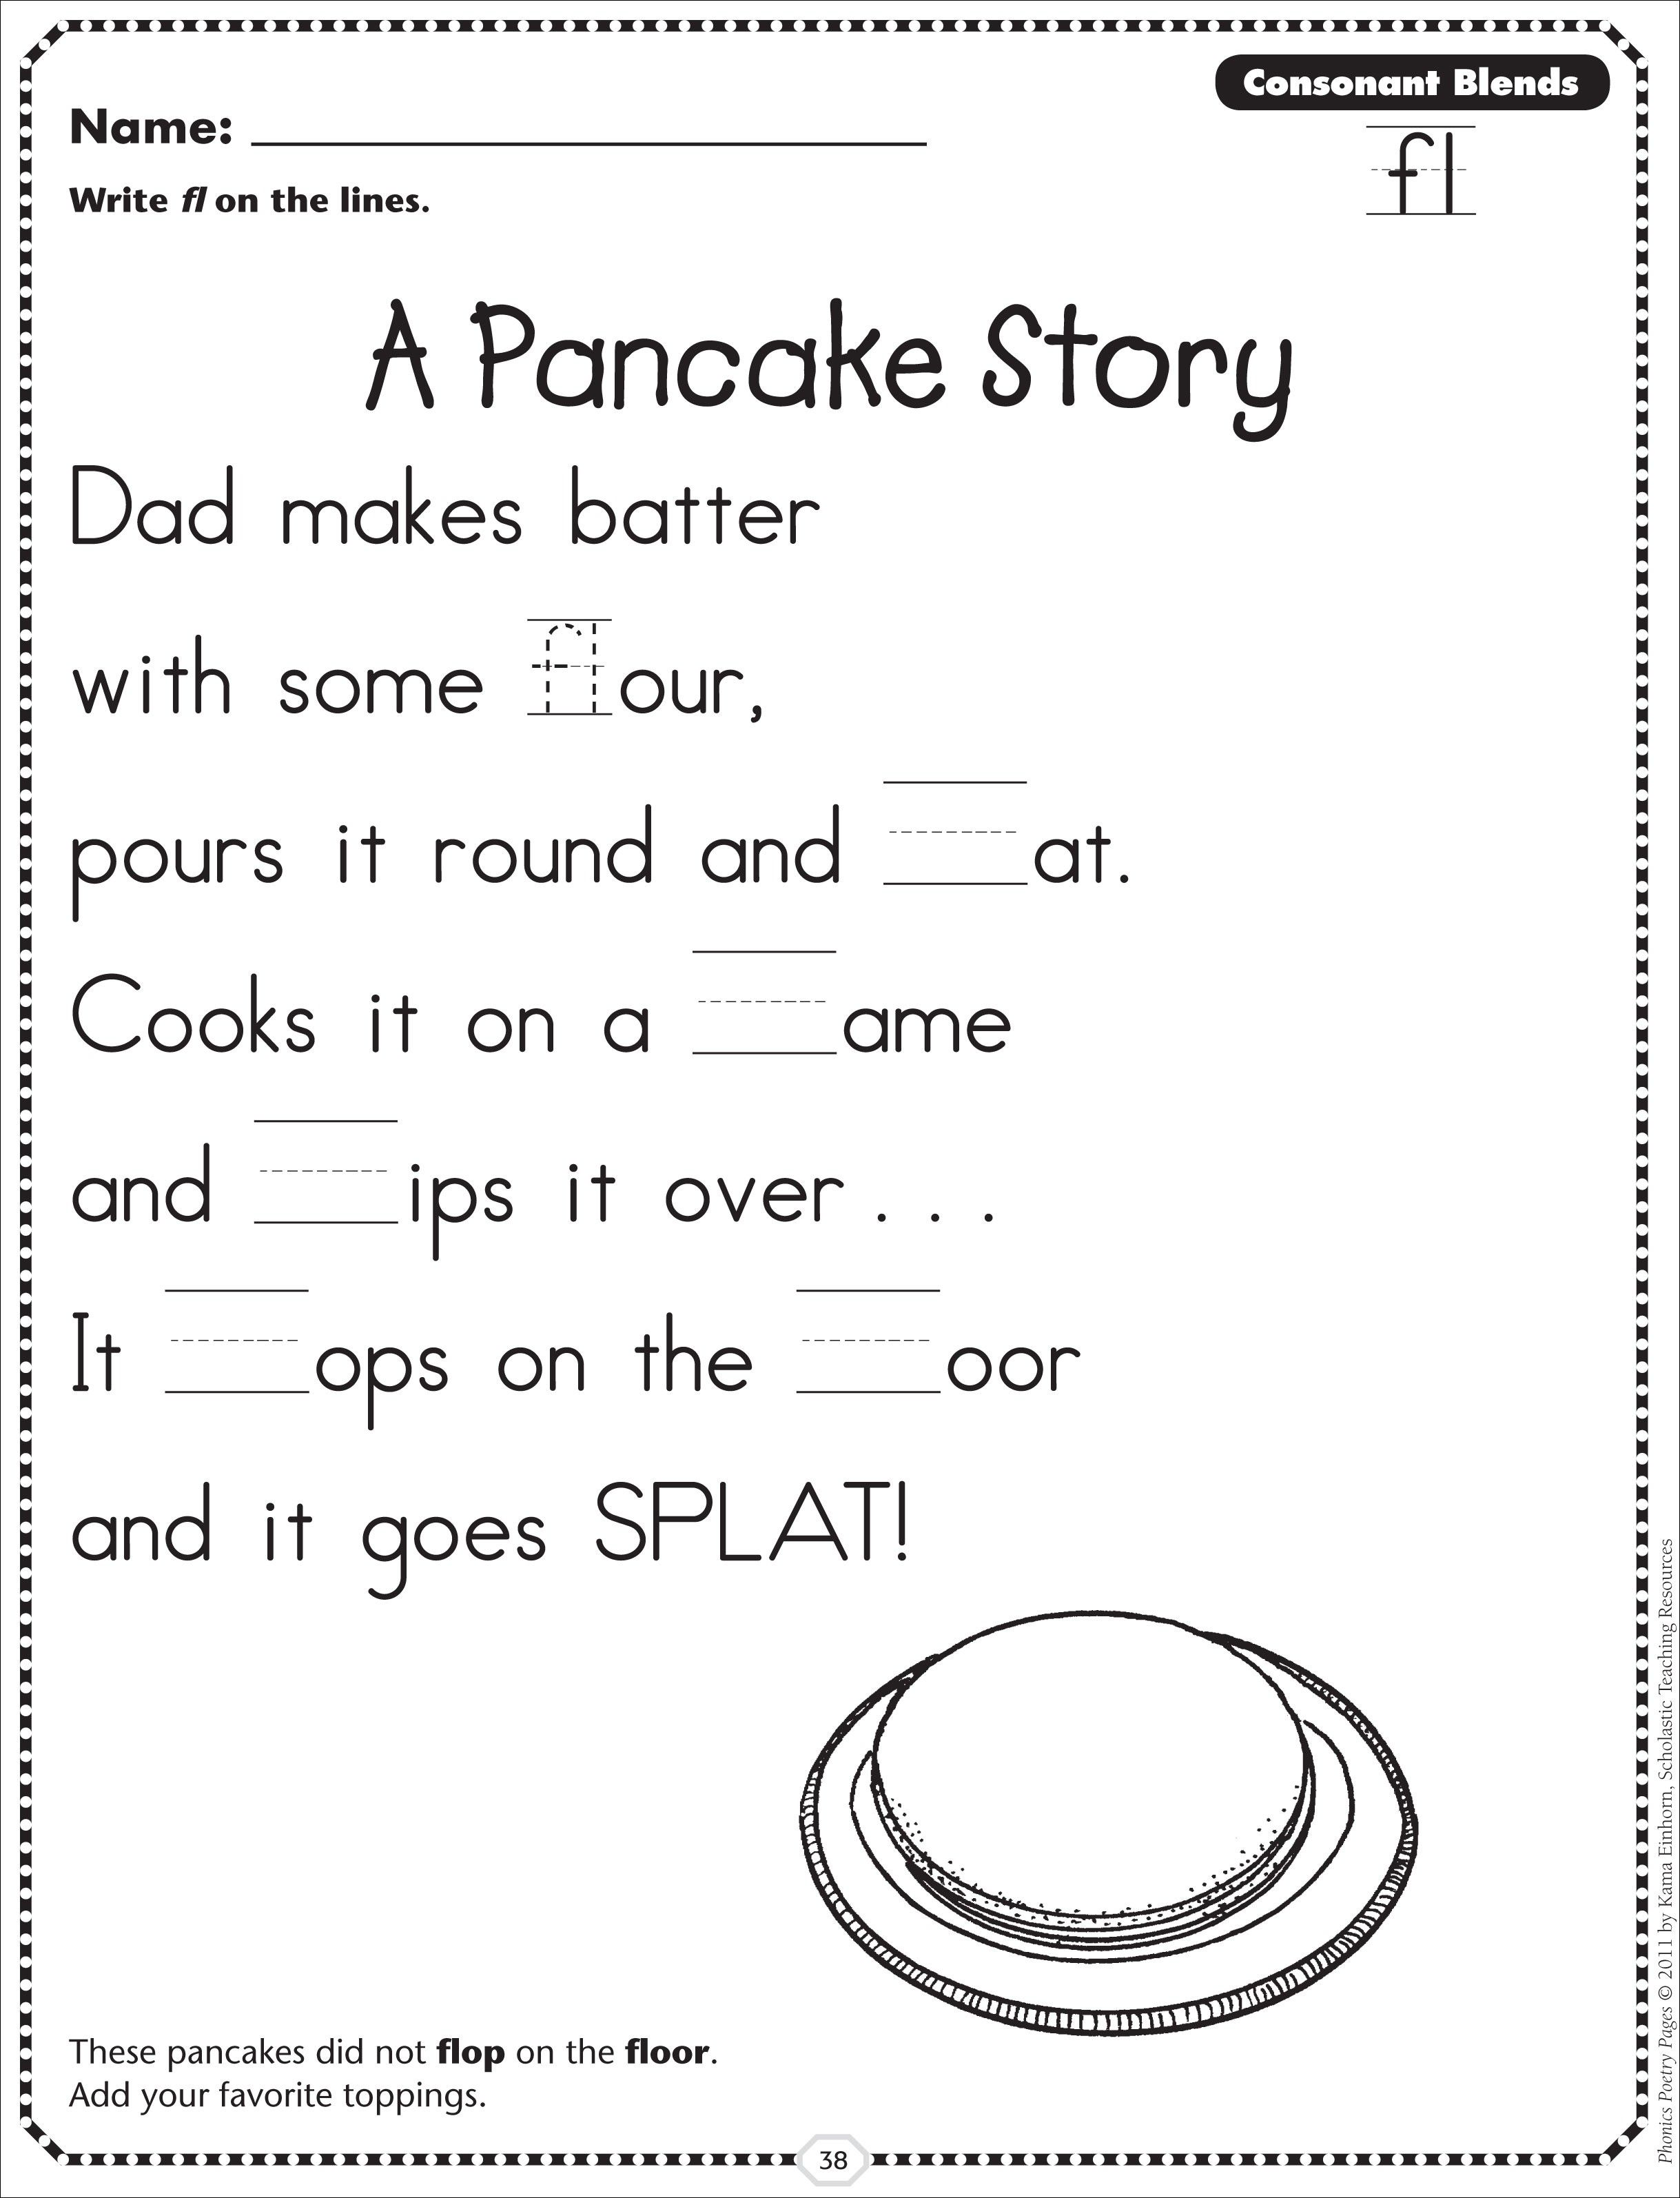 Worksheet Phonic Blends Flashcards 17 images about read to succeed ideas on pinterest charts long vowels and literacy